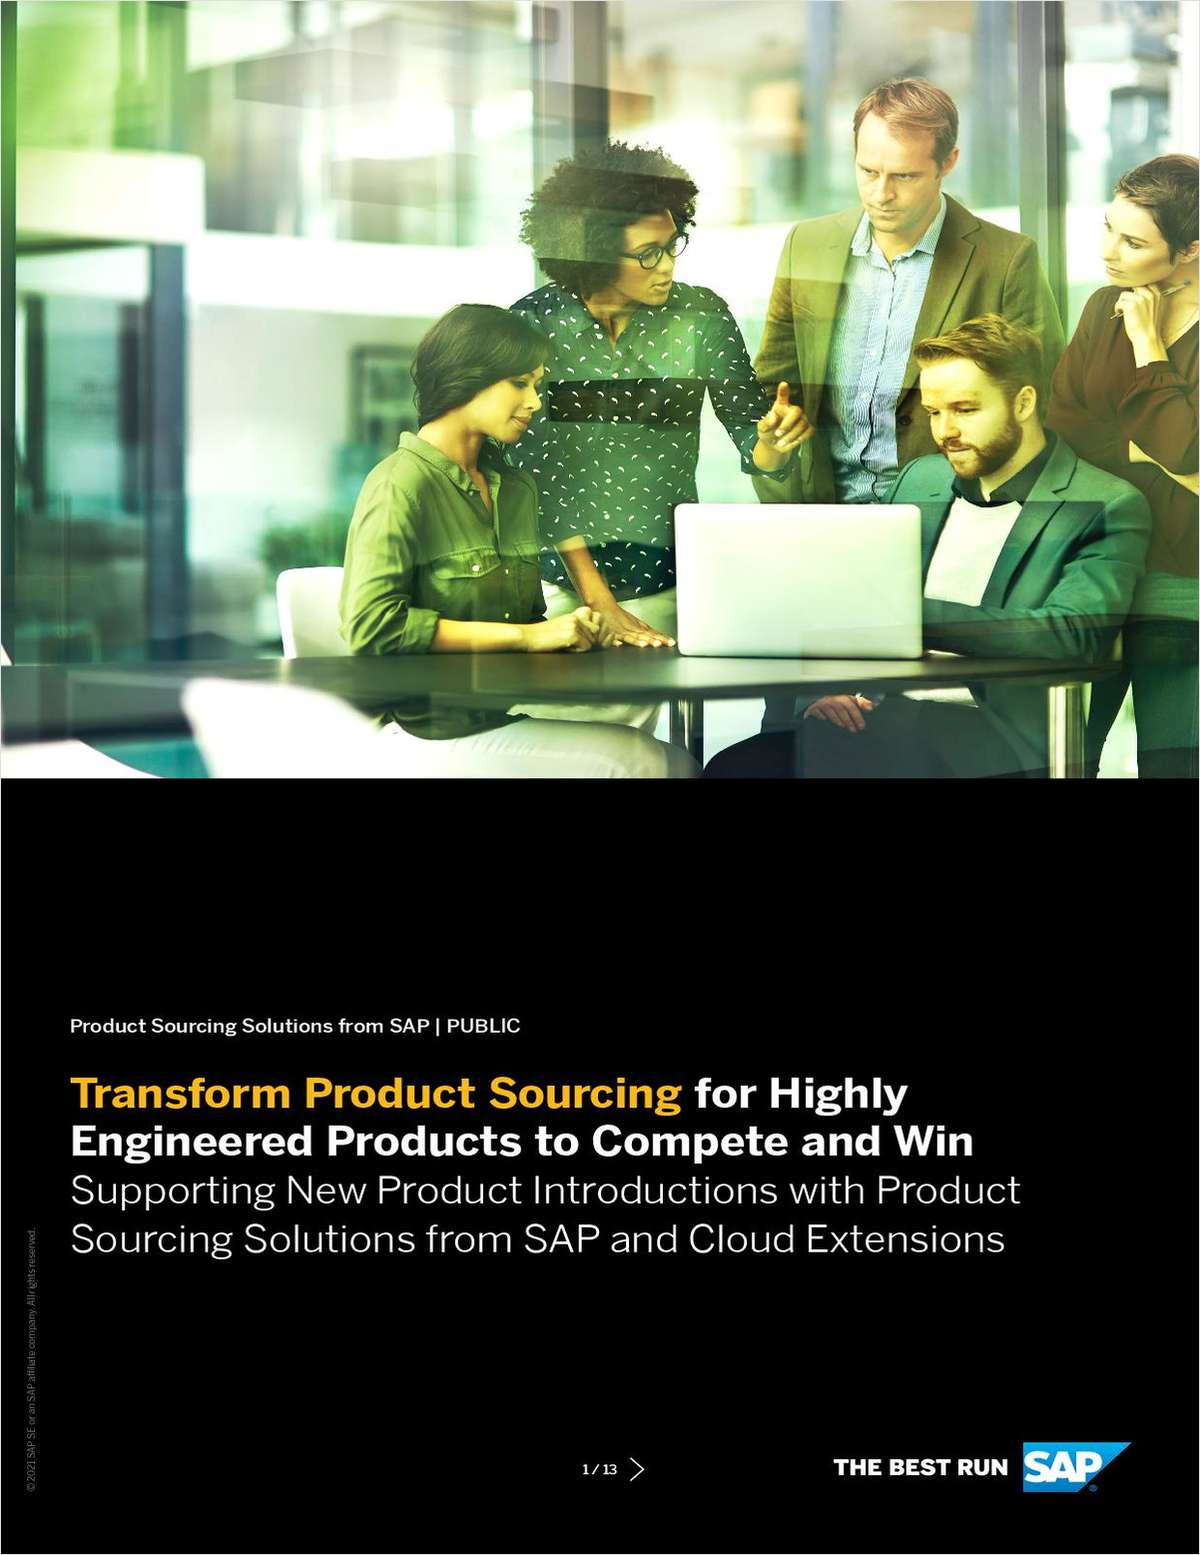 Transform Product Sourcing for Highly Engineered Products